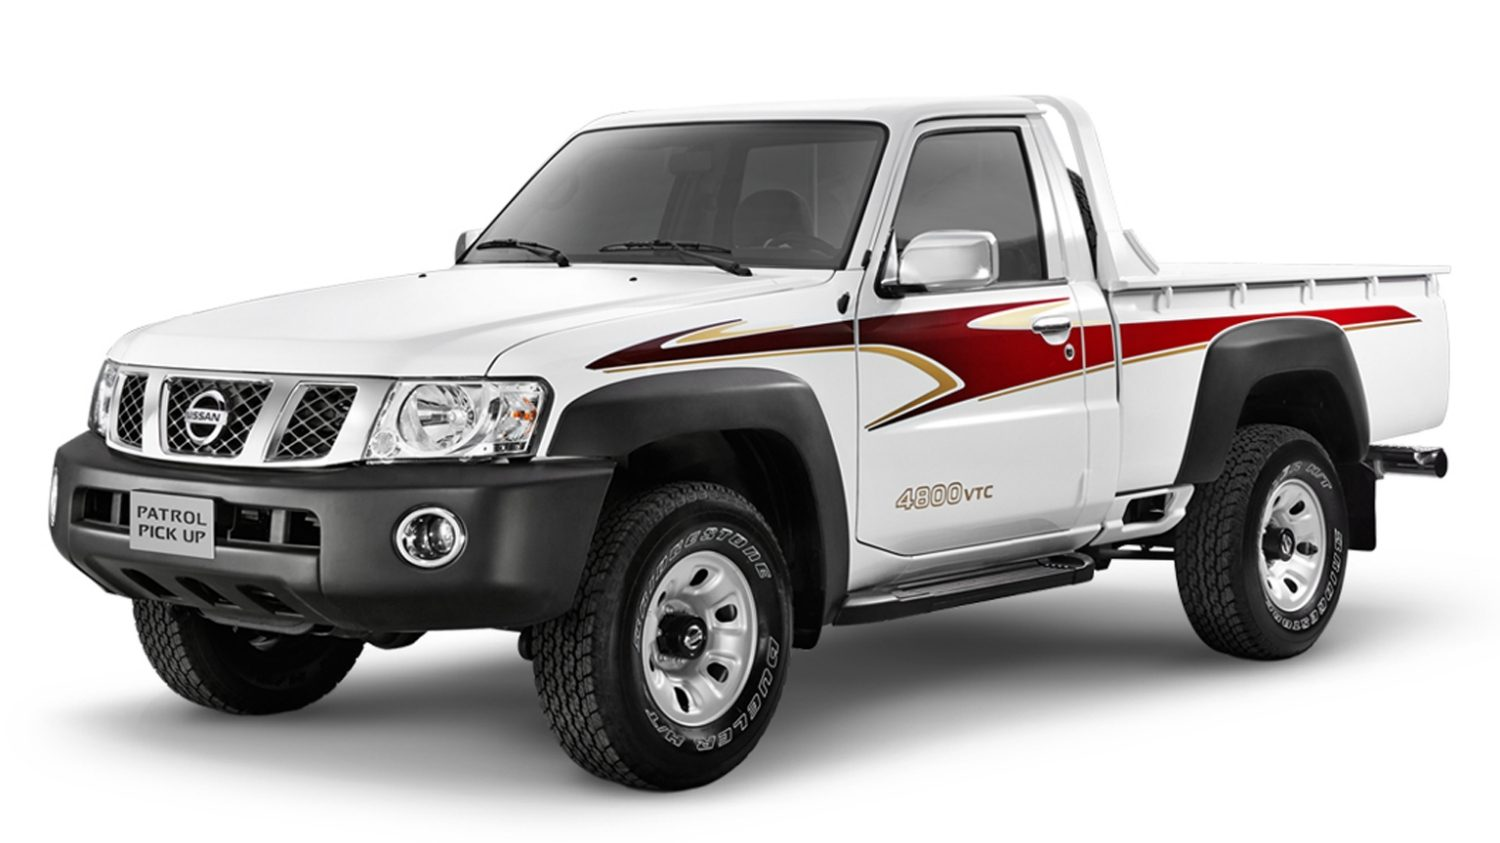 2017 Nissan Patrol Pickup Manual Car Skoda Pick Up 1 3 Engine Diagram Price Full Technical Specifications Review Performance In The Uae Dubai